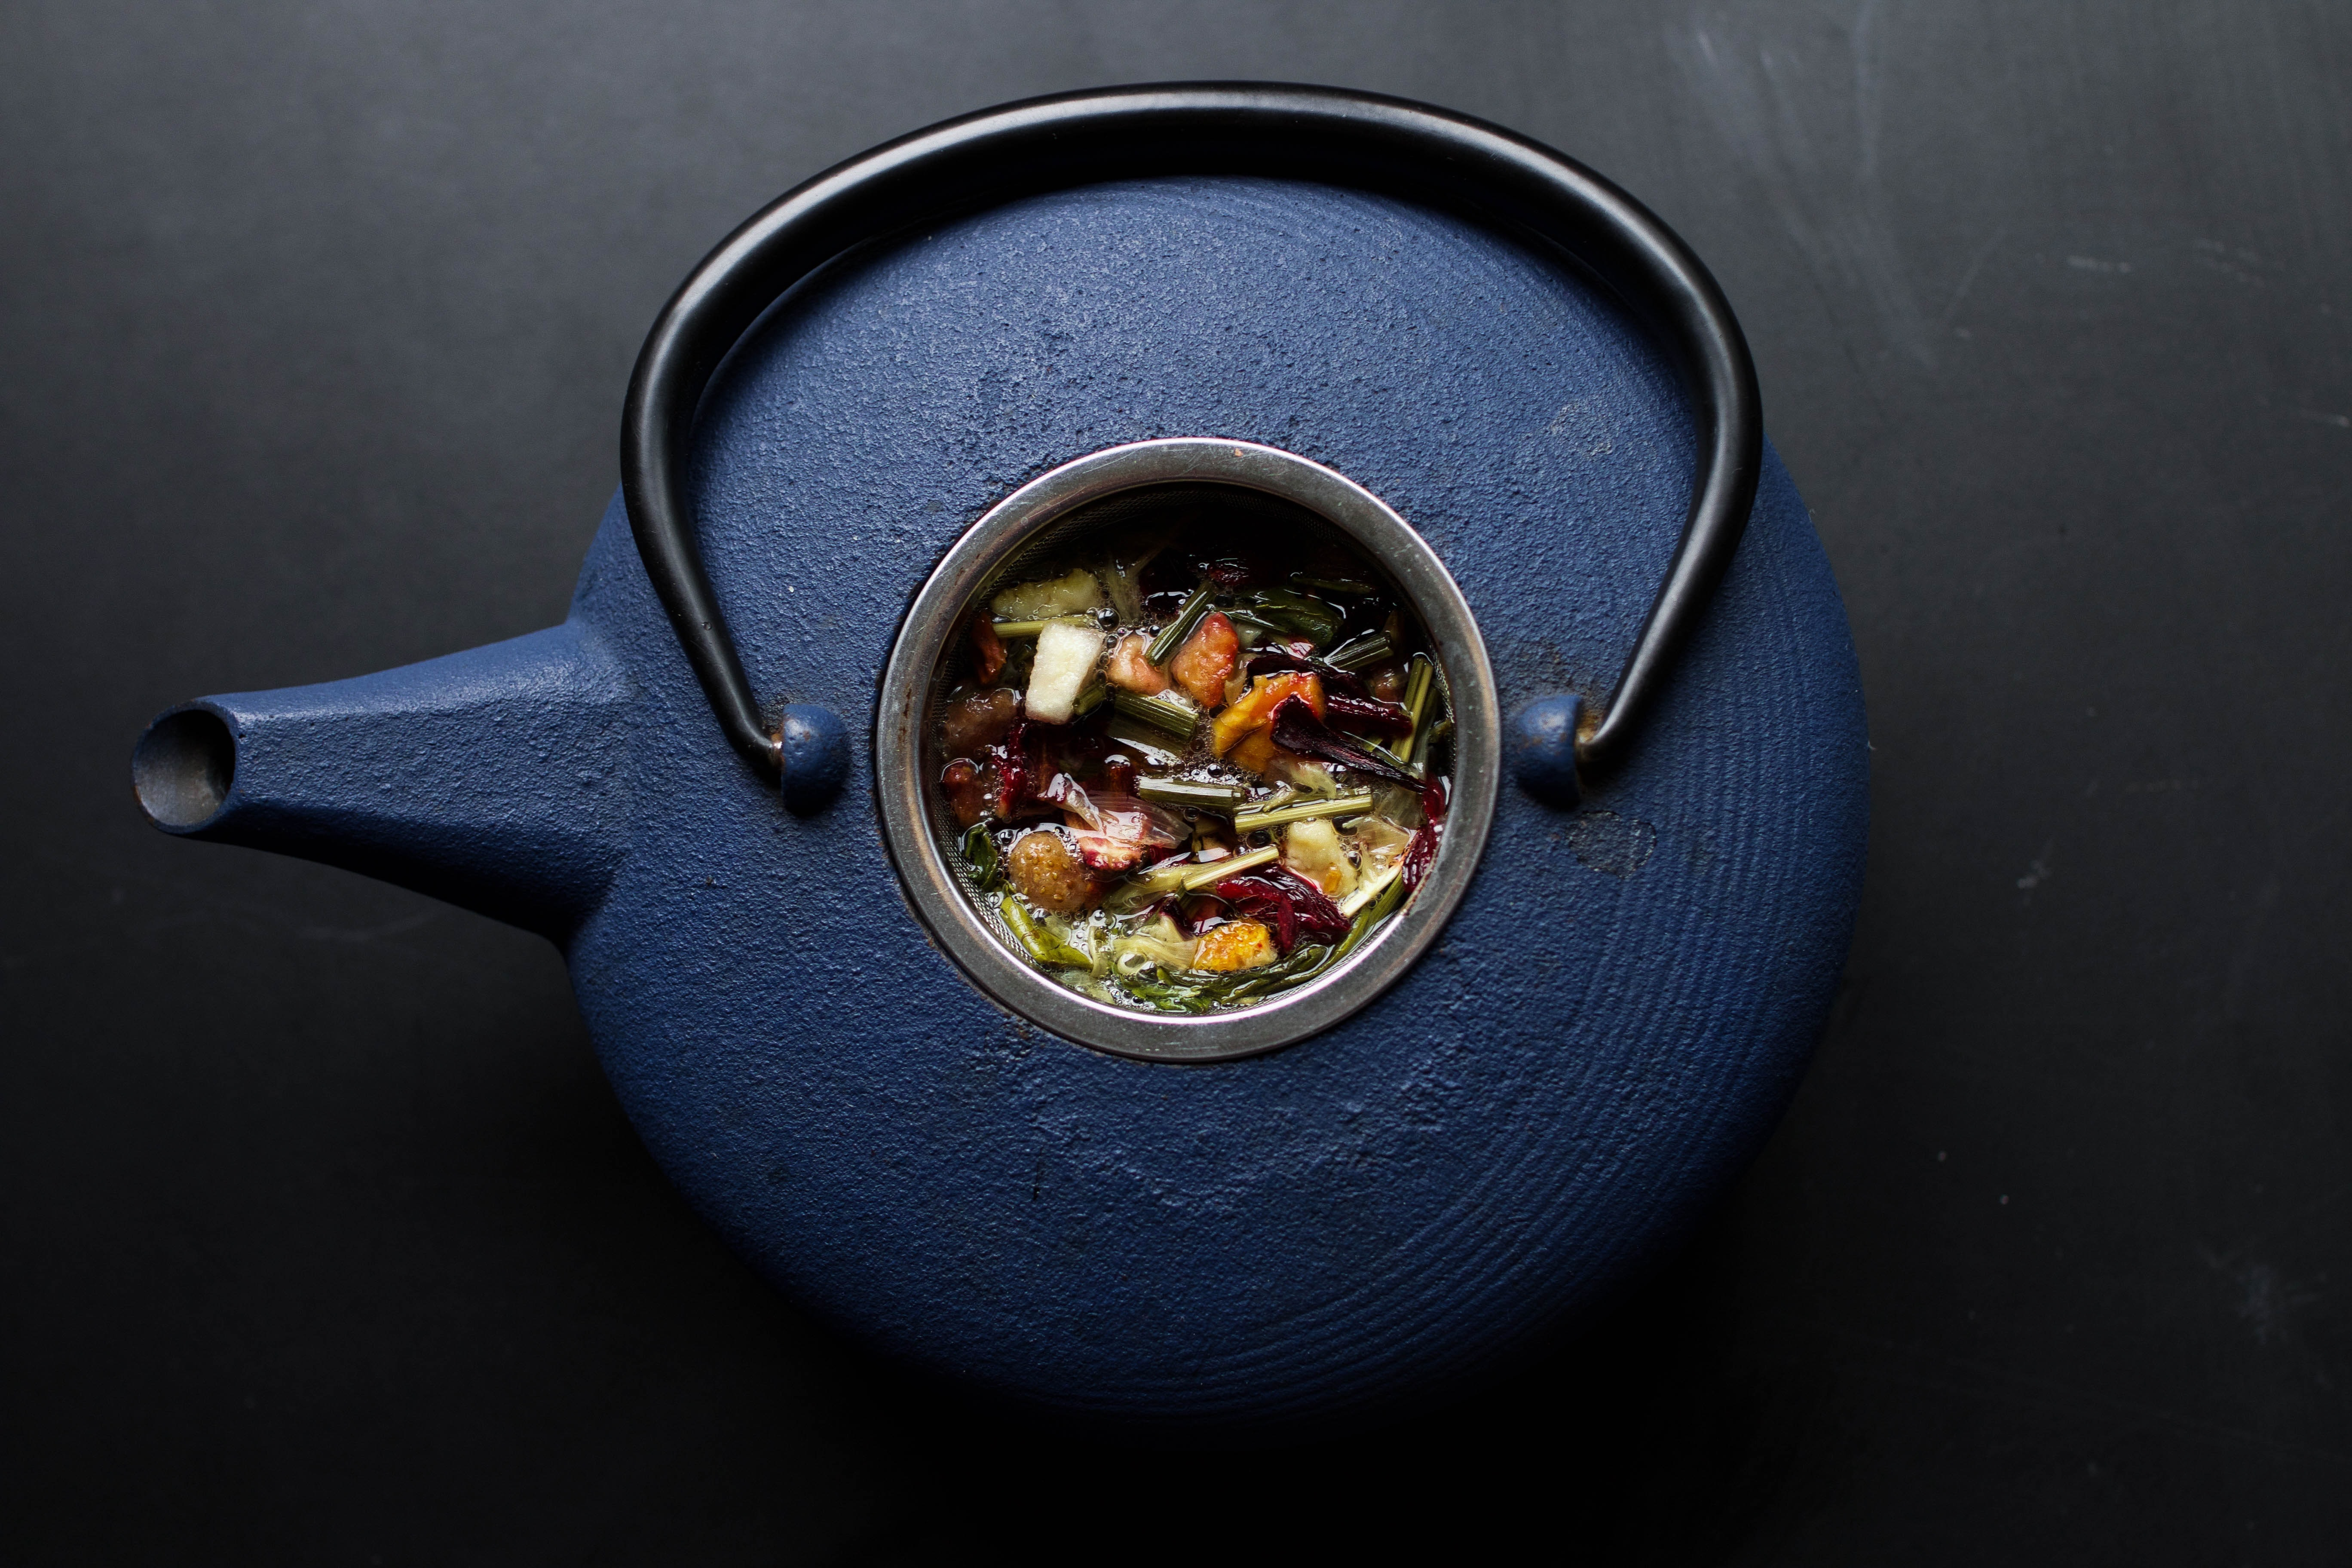 Overhead view of a blue kettle teapot filled with herbs at Laguna Beach